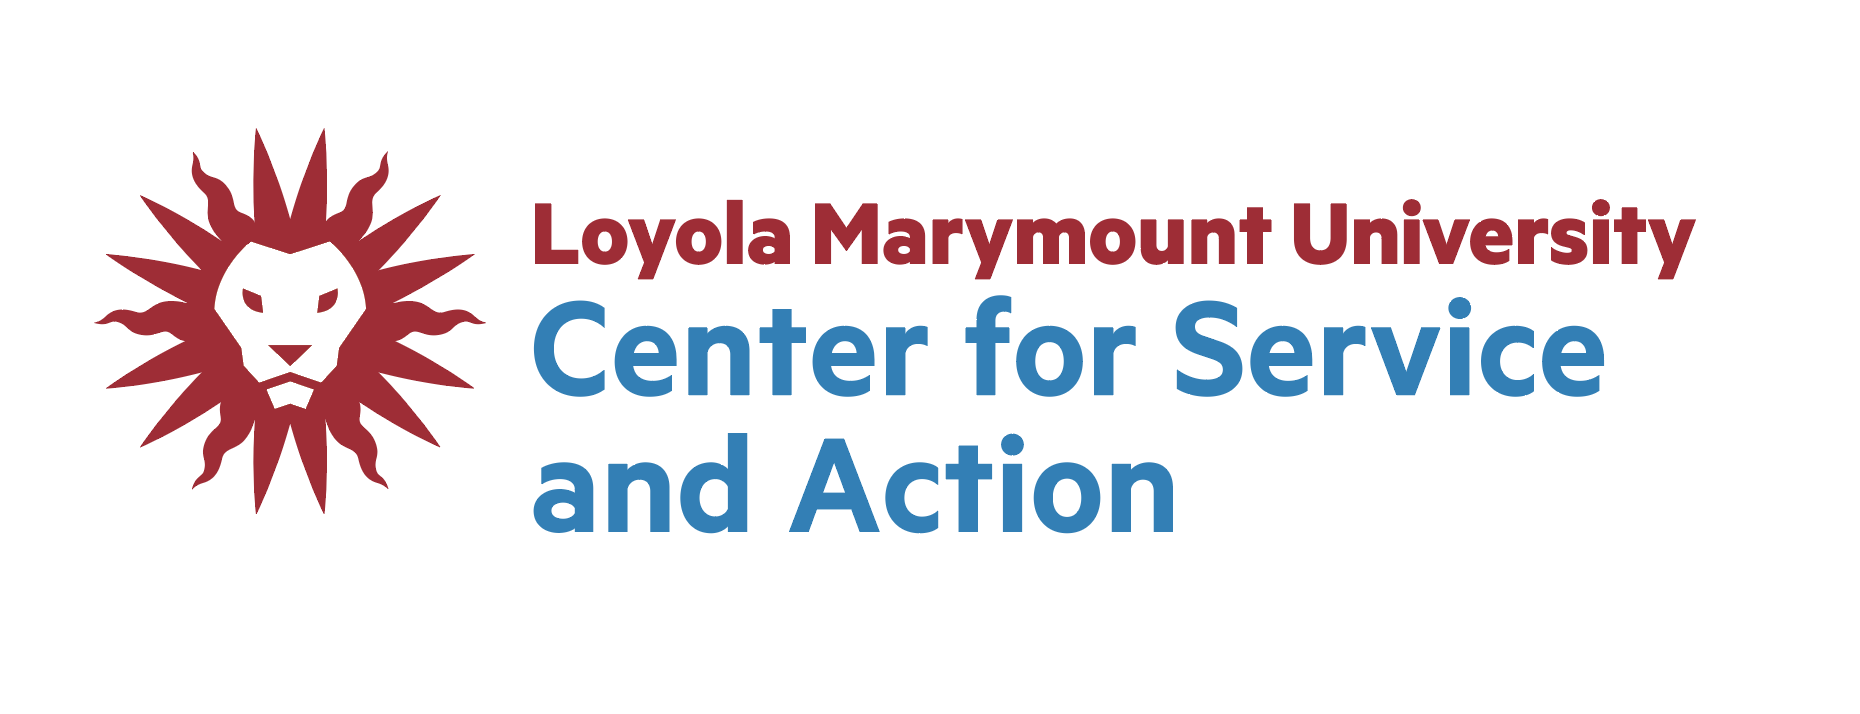 LMU Center for Service and Action logo